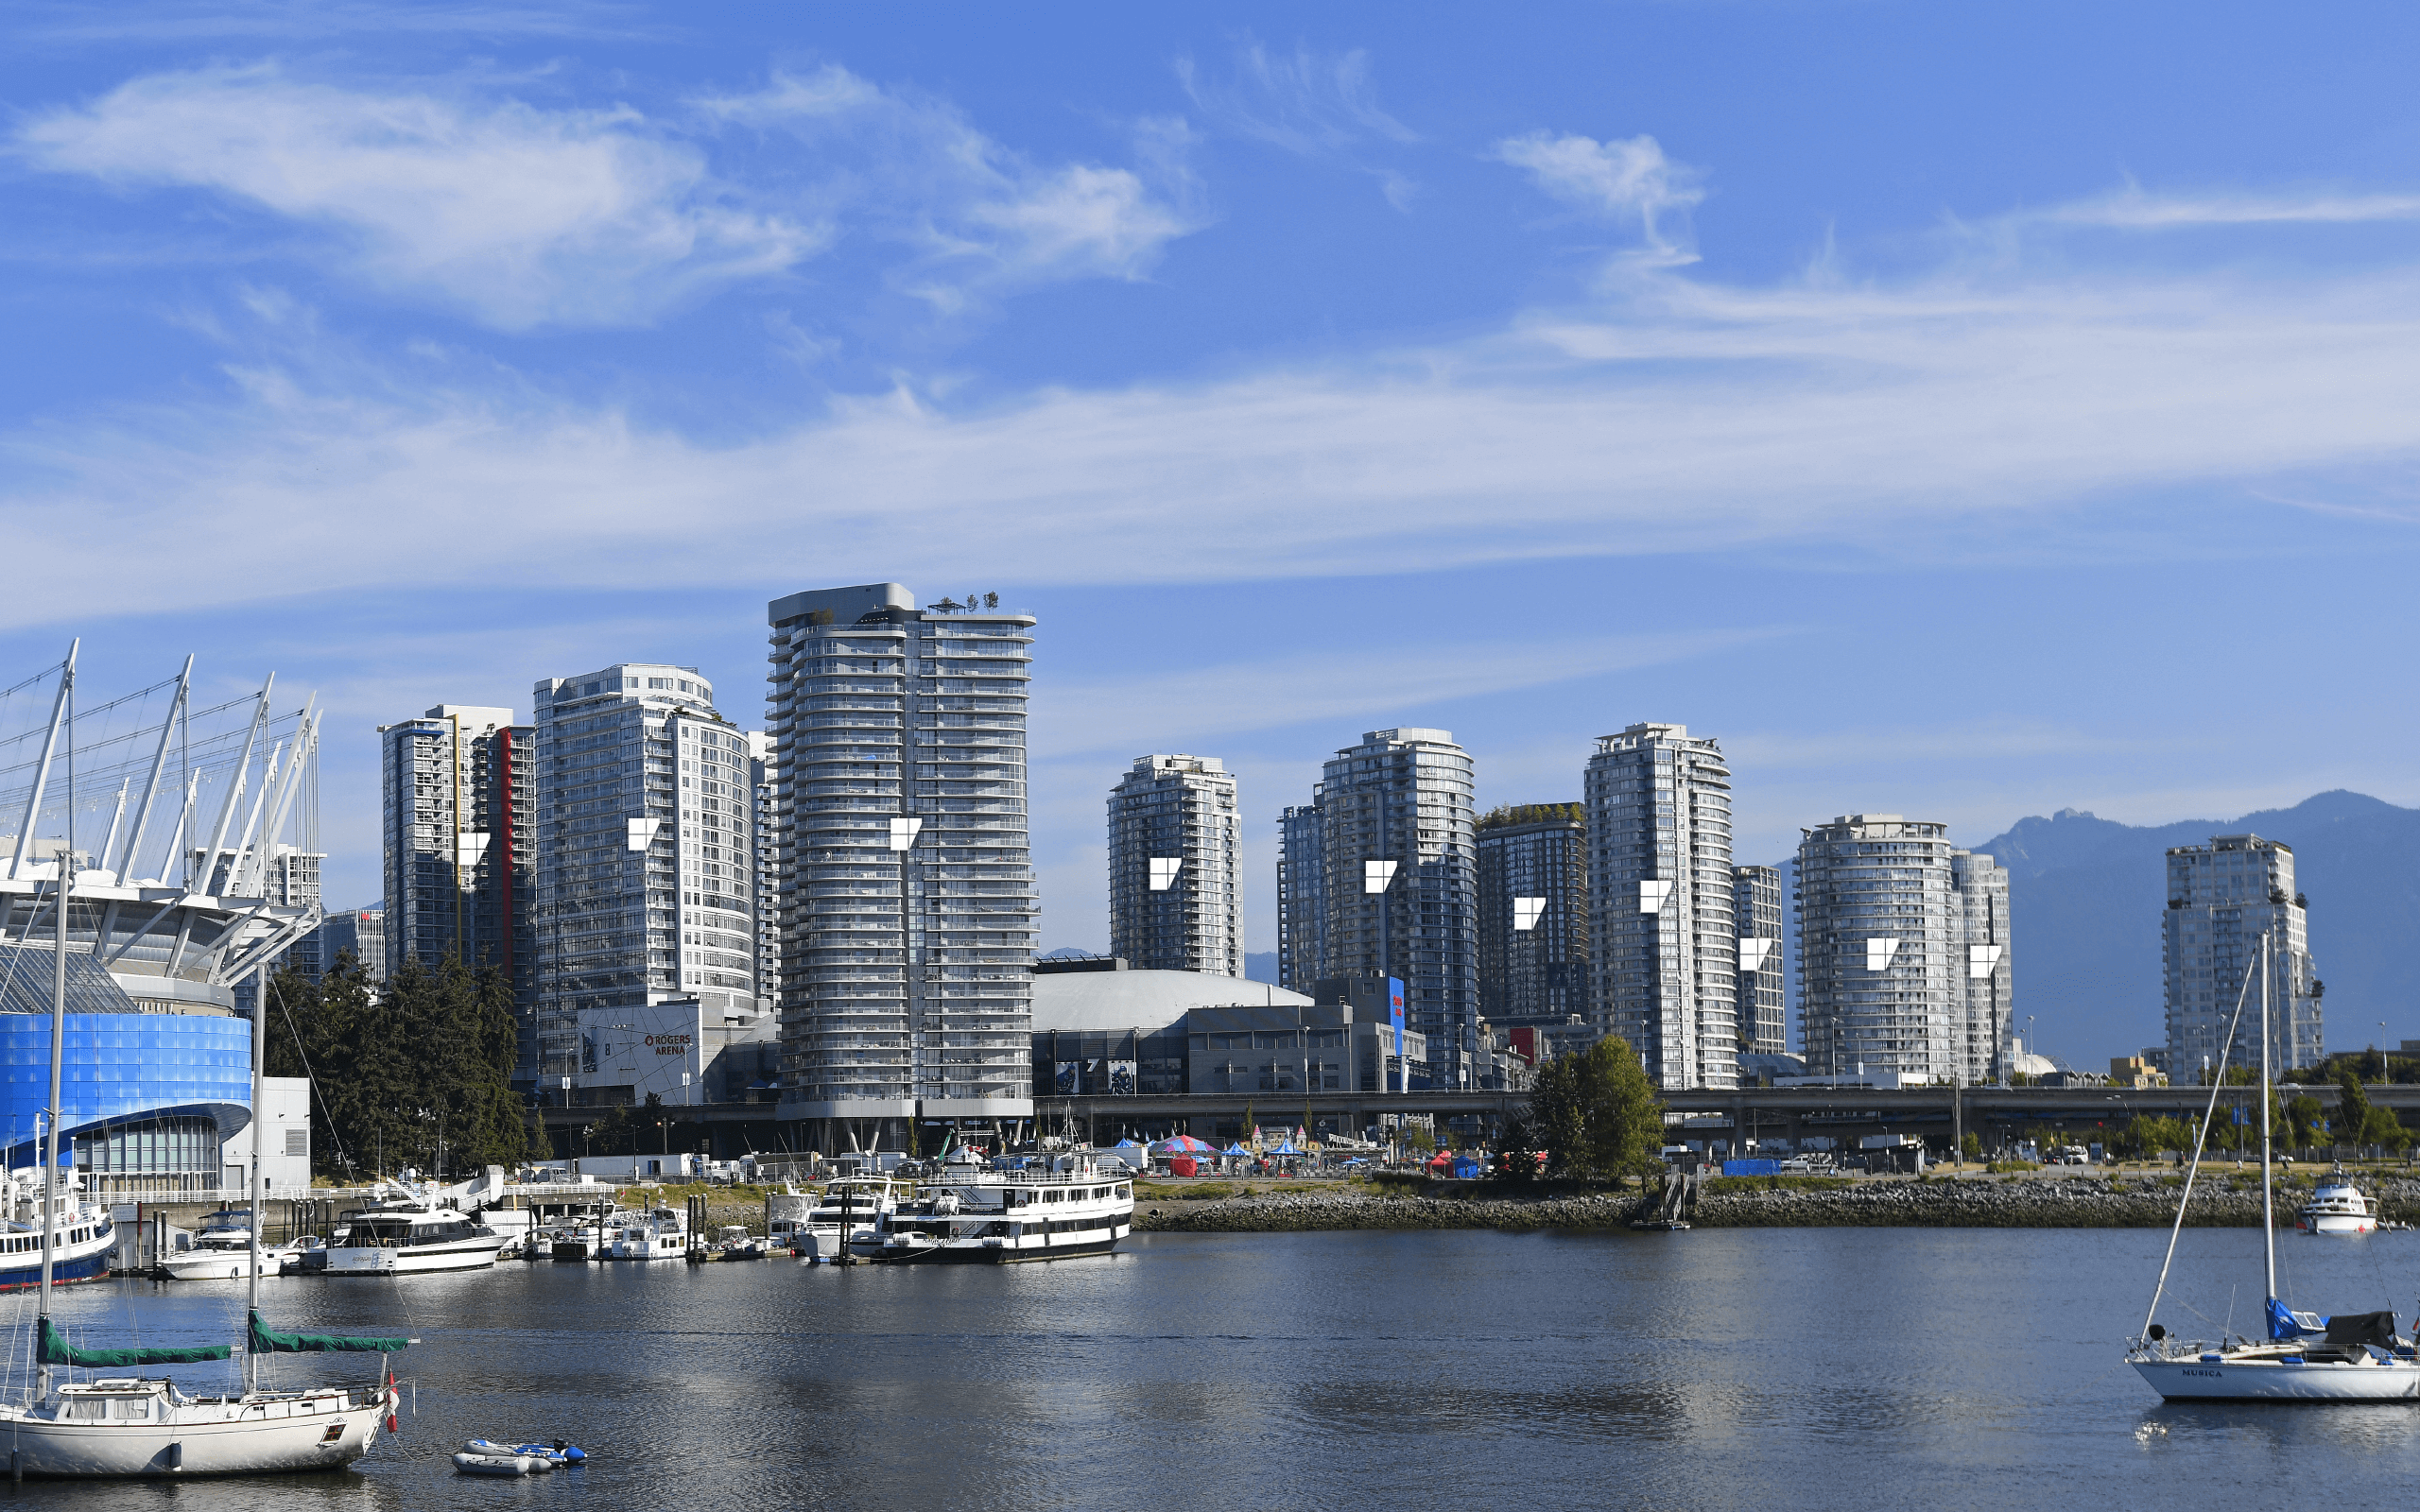 British Columbia Skyline with BVGlazing Systems Building